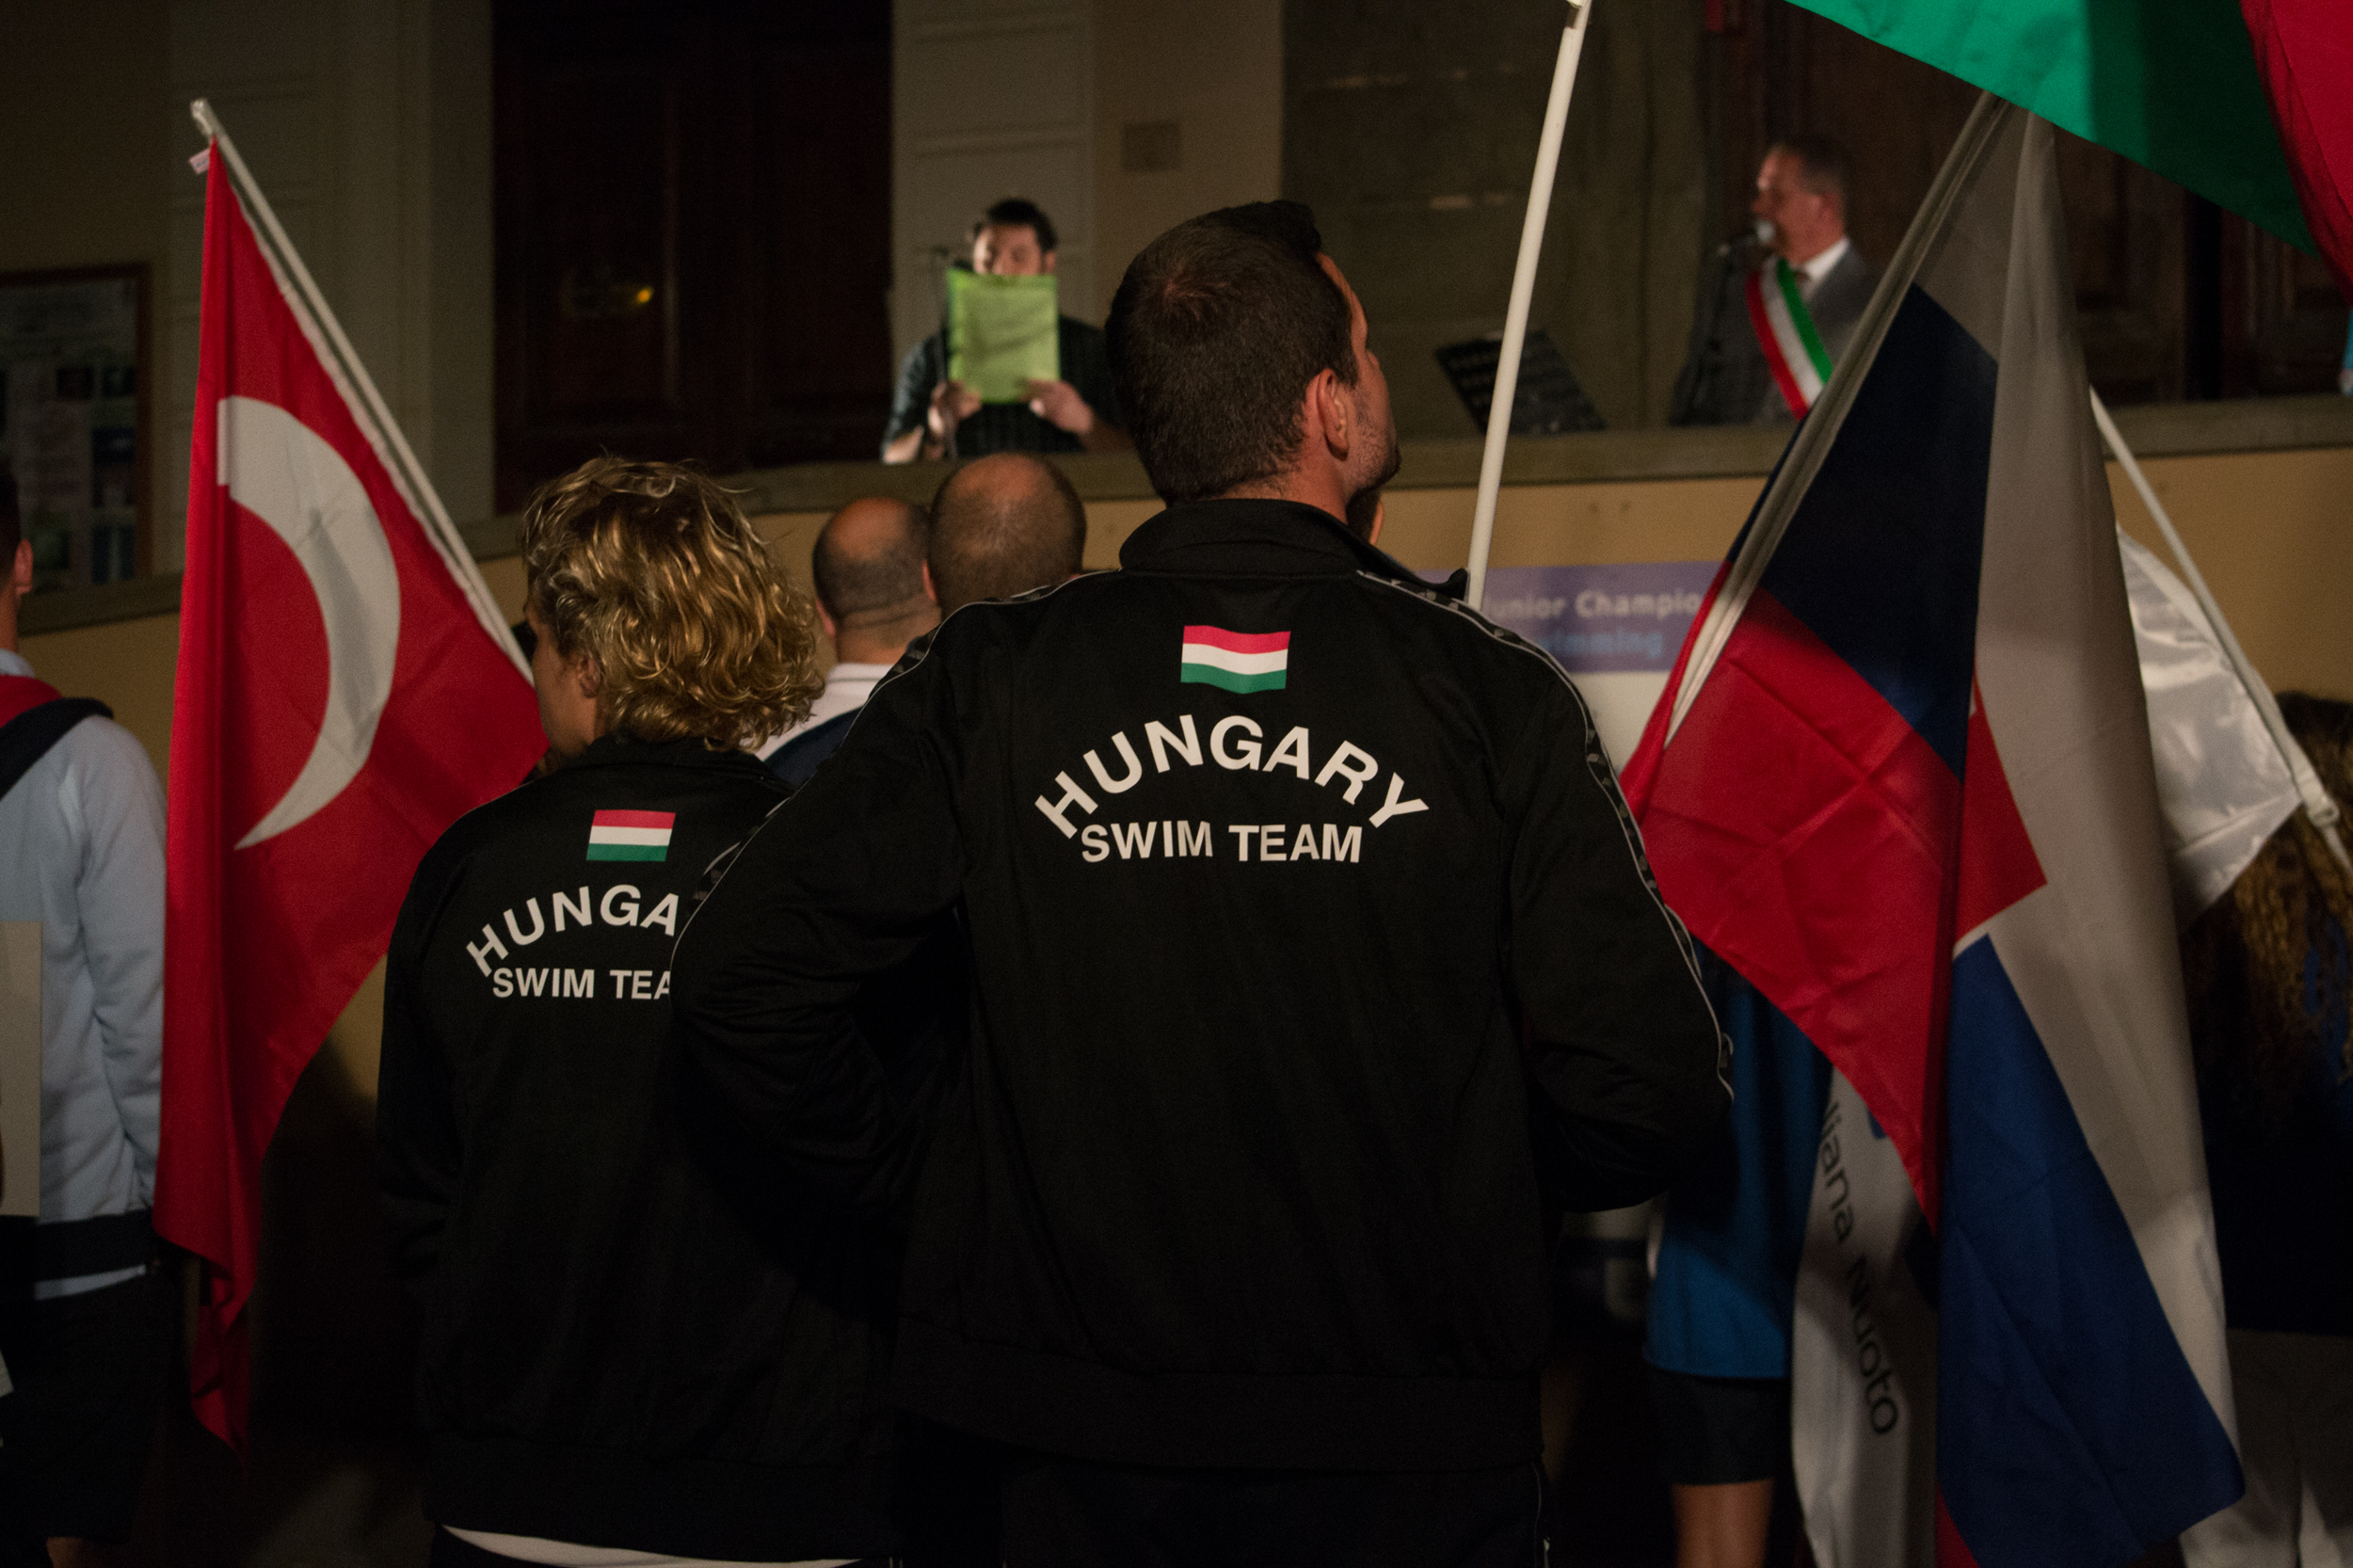 Hungary swim team-bandiere-sindaco